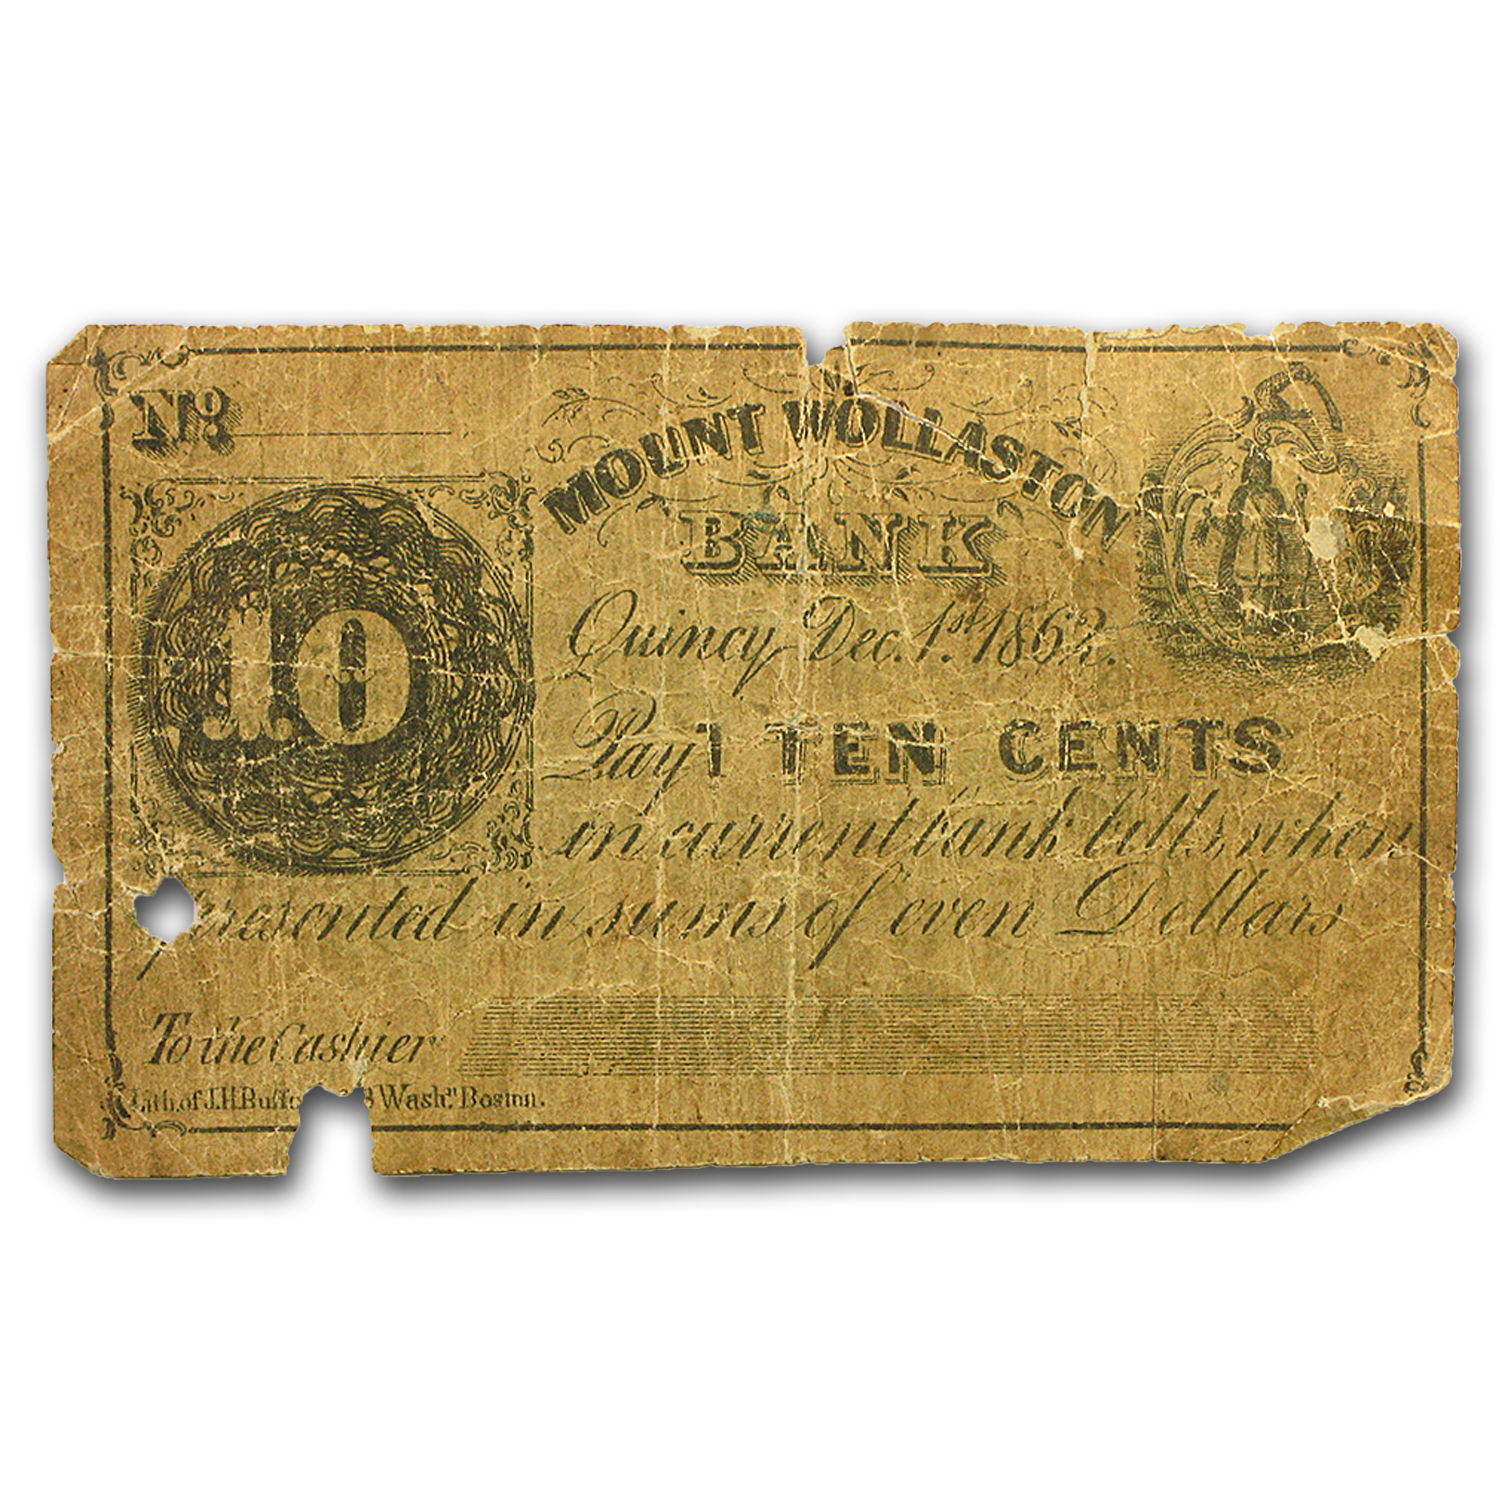 1862 Mount Wollaston Bank of Quincy, MA VG 10 Cents